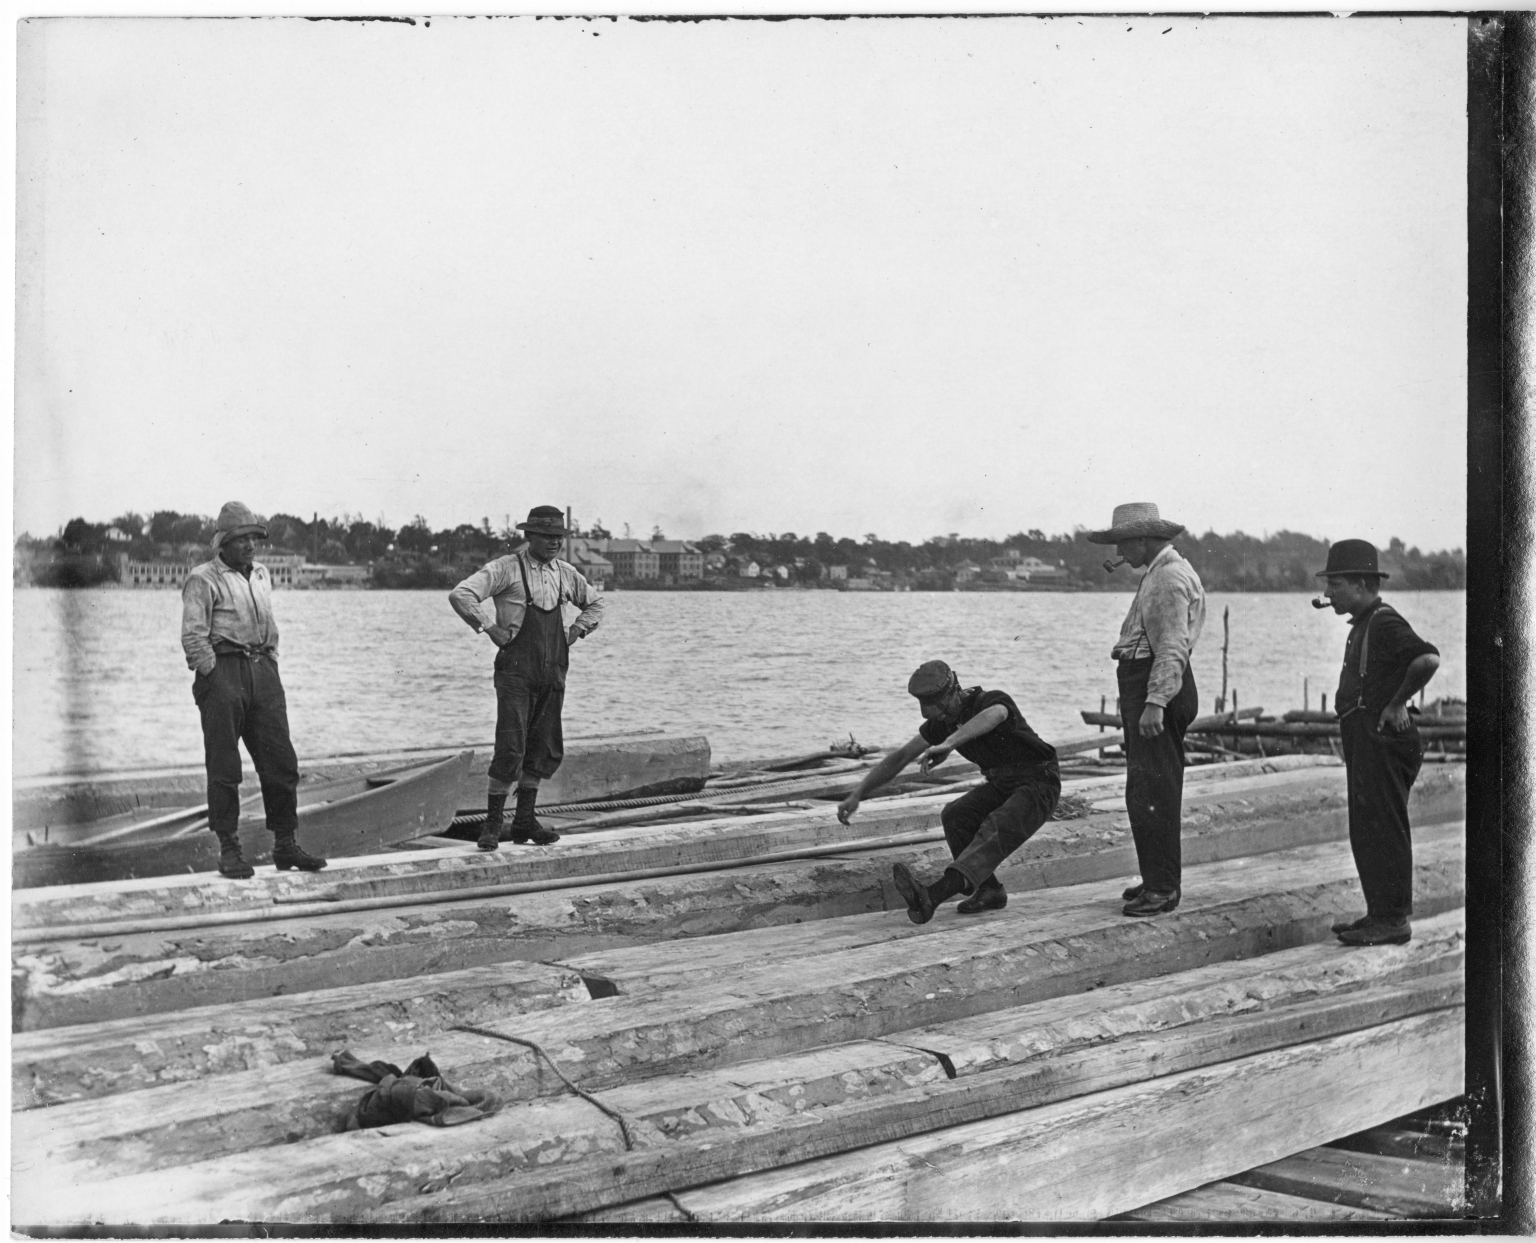 Men aboard a log raft